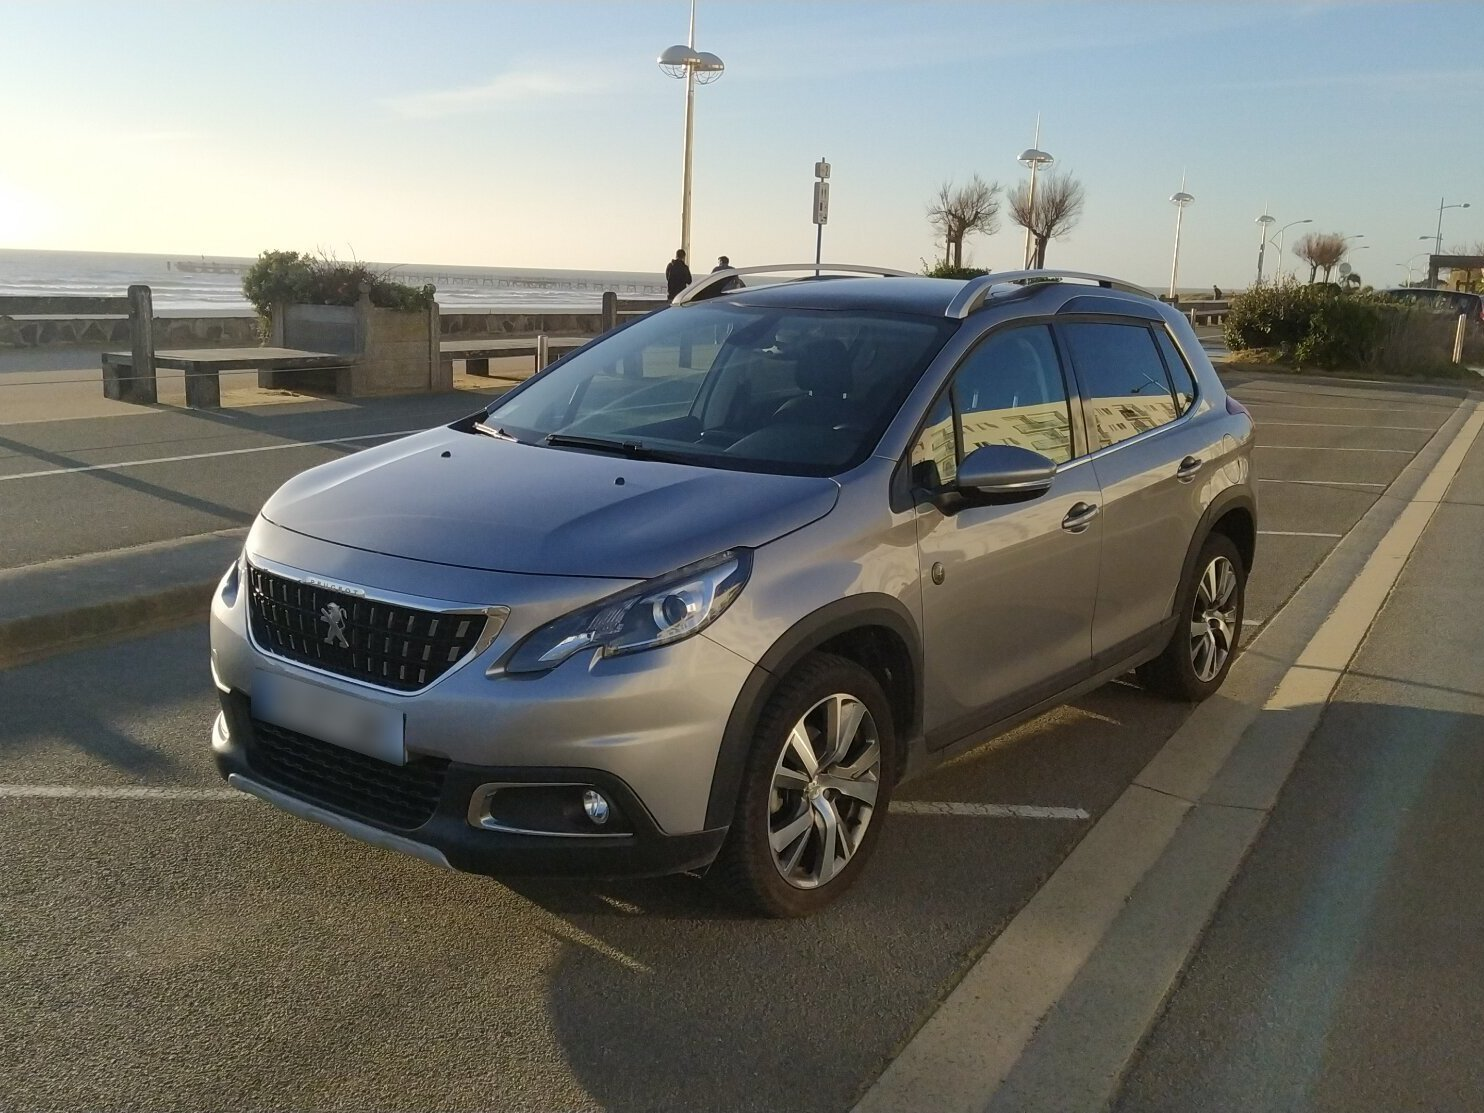 PEUGEOT 2008 1.5 BLUEHDI 120 CROSSWAY EAT BVA START-STOP EU6C